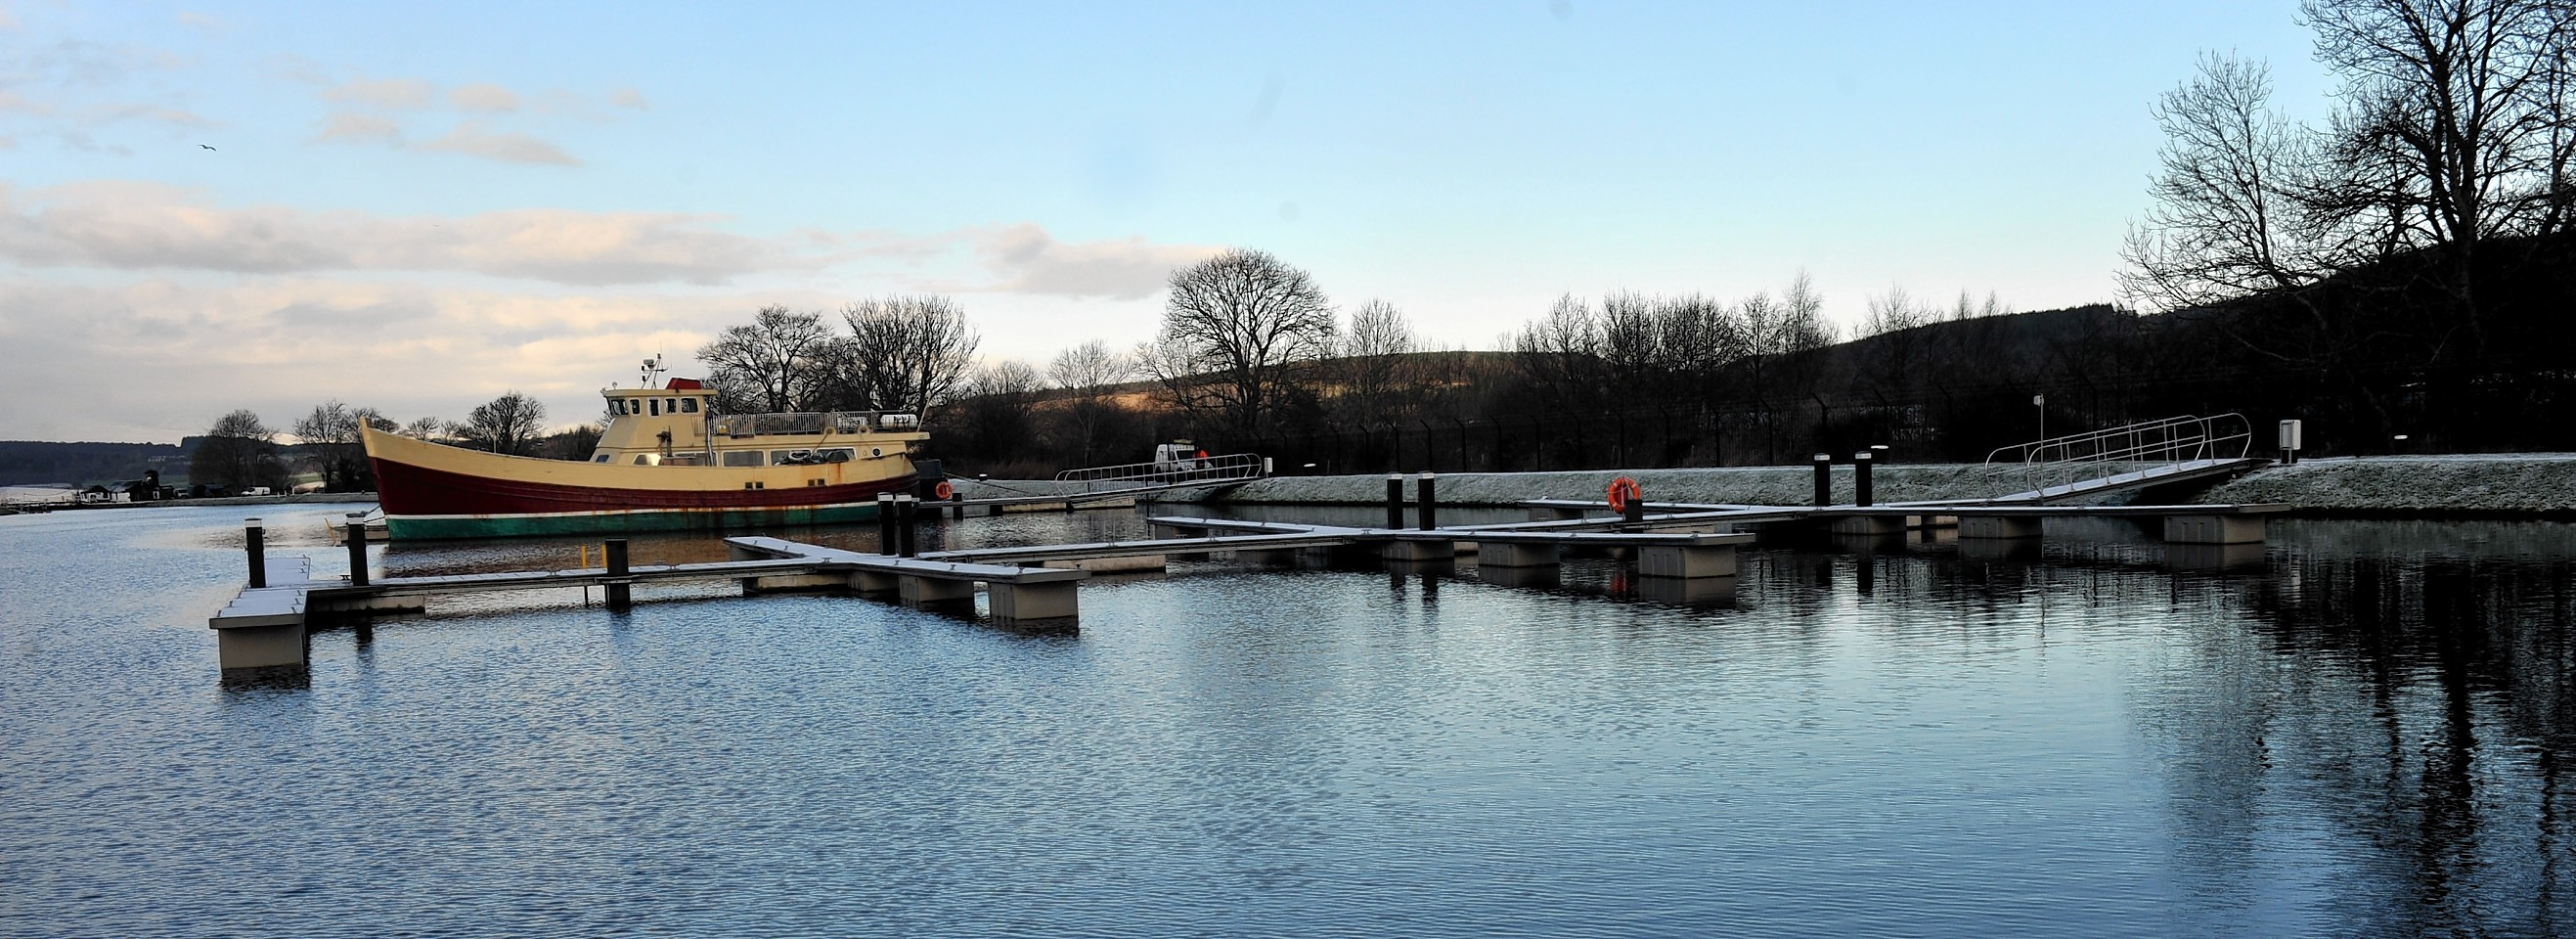 Muirtown Basin in Inverness